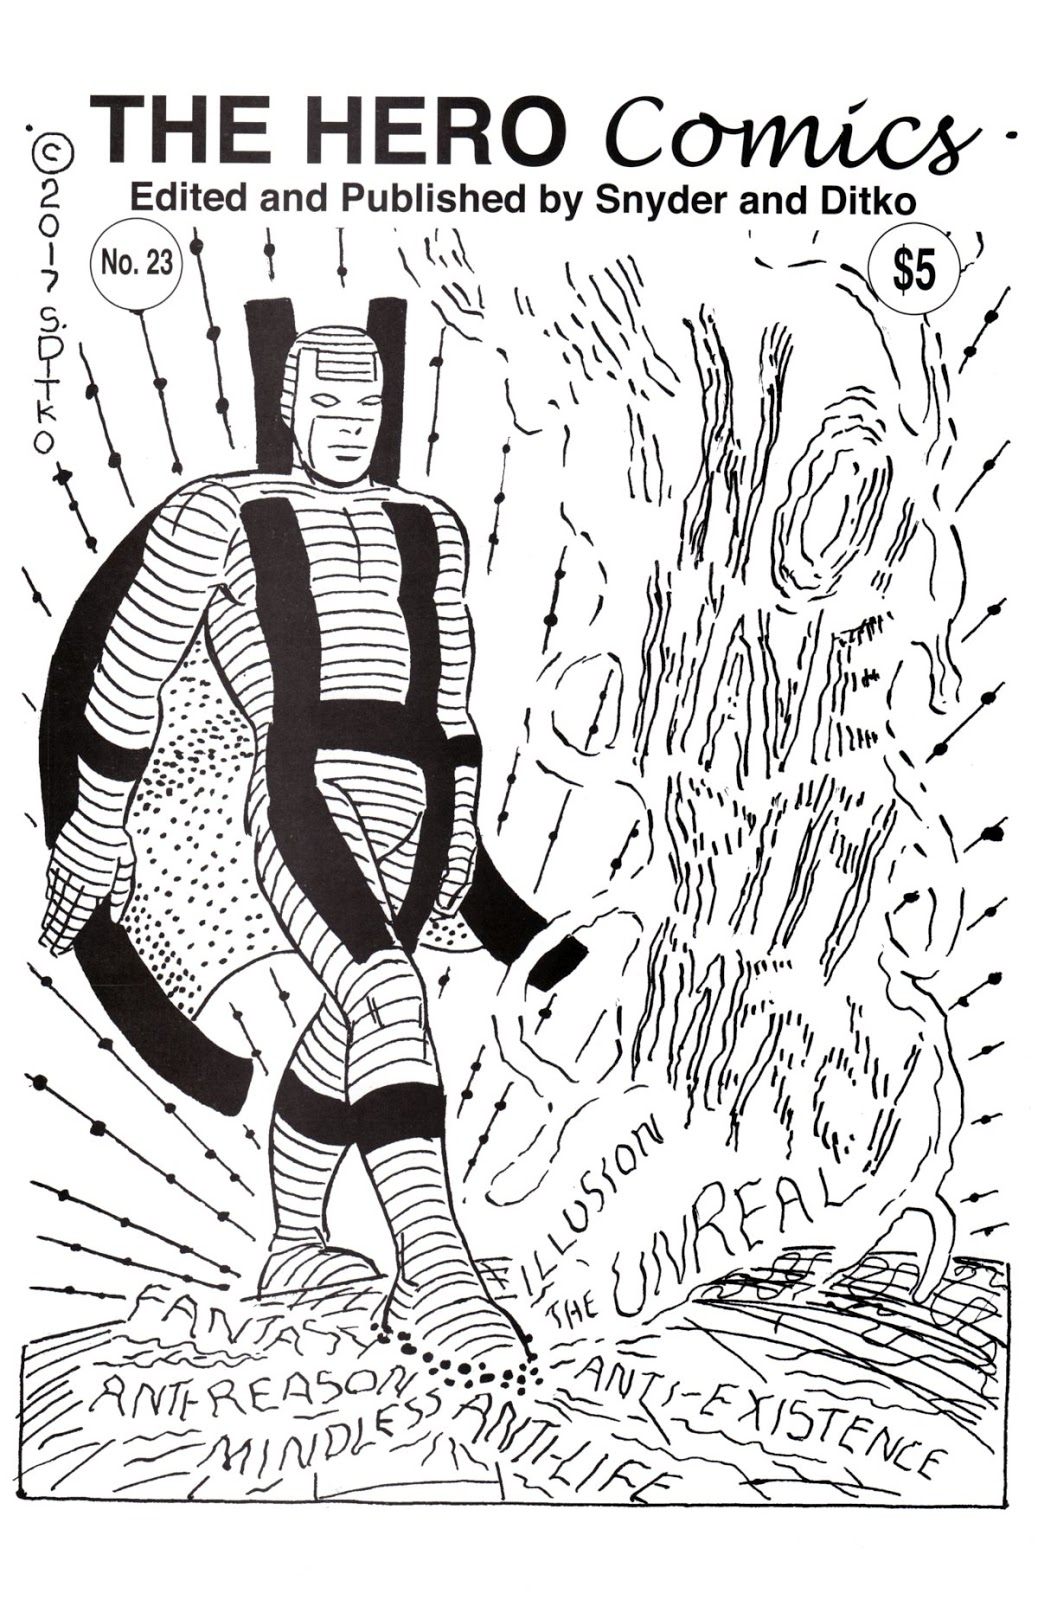 The coloring book project 2nd edition - Now Available Robin Snyder And Steve Ditko Two 48 Page Comics Should Be Available From The Usual Sources Including Snyder Directly